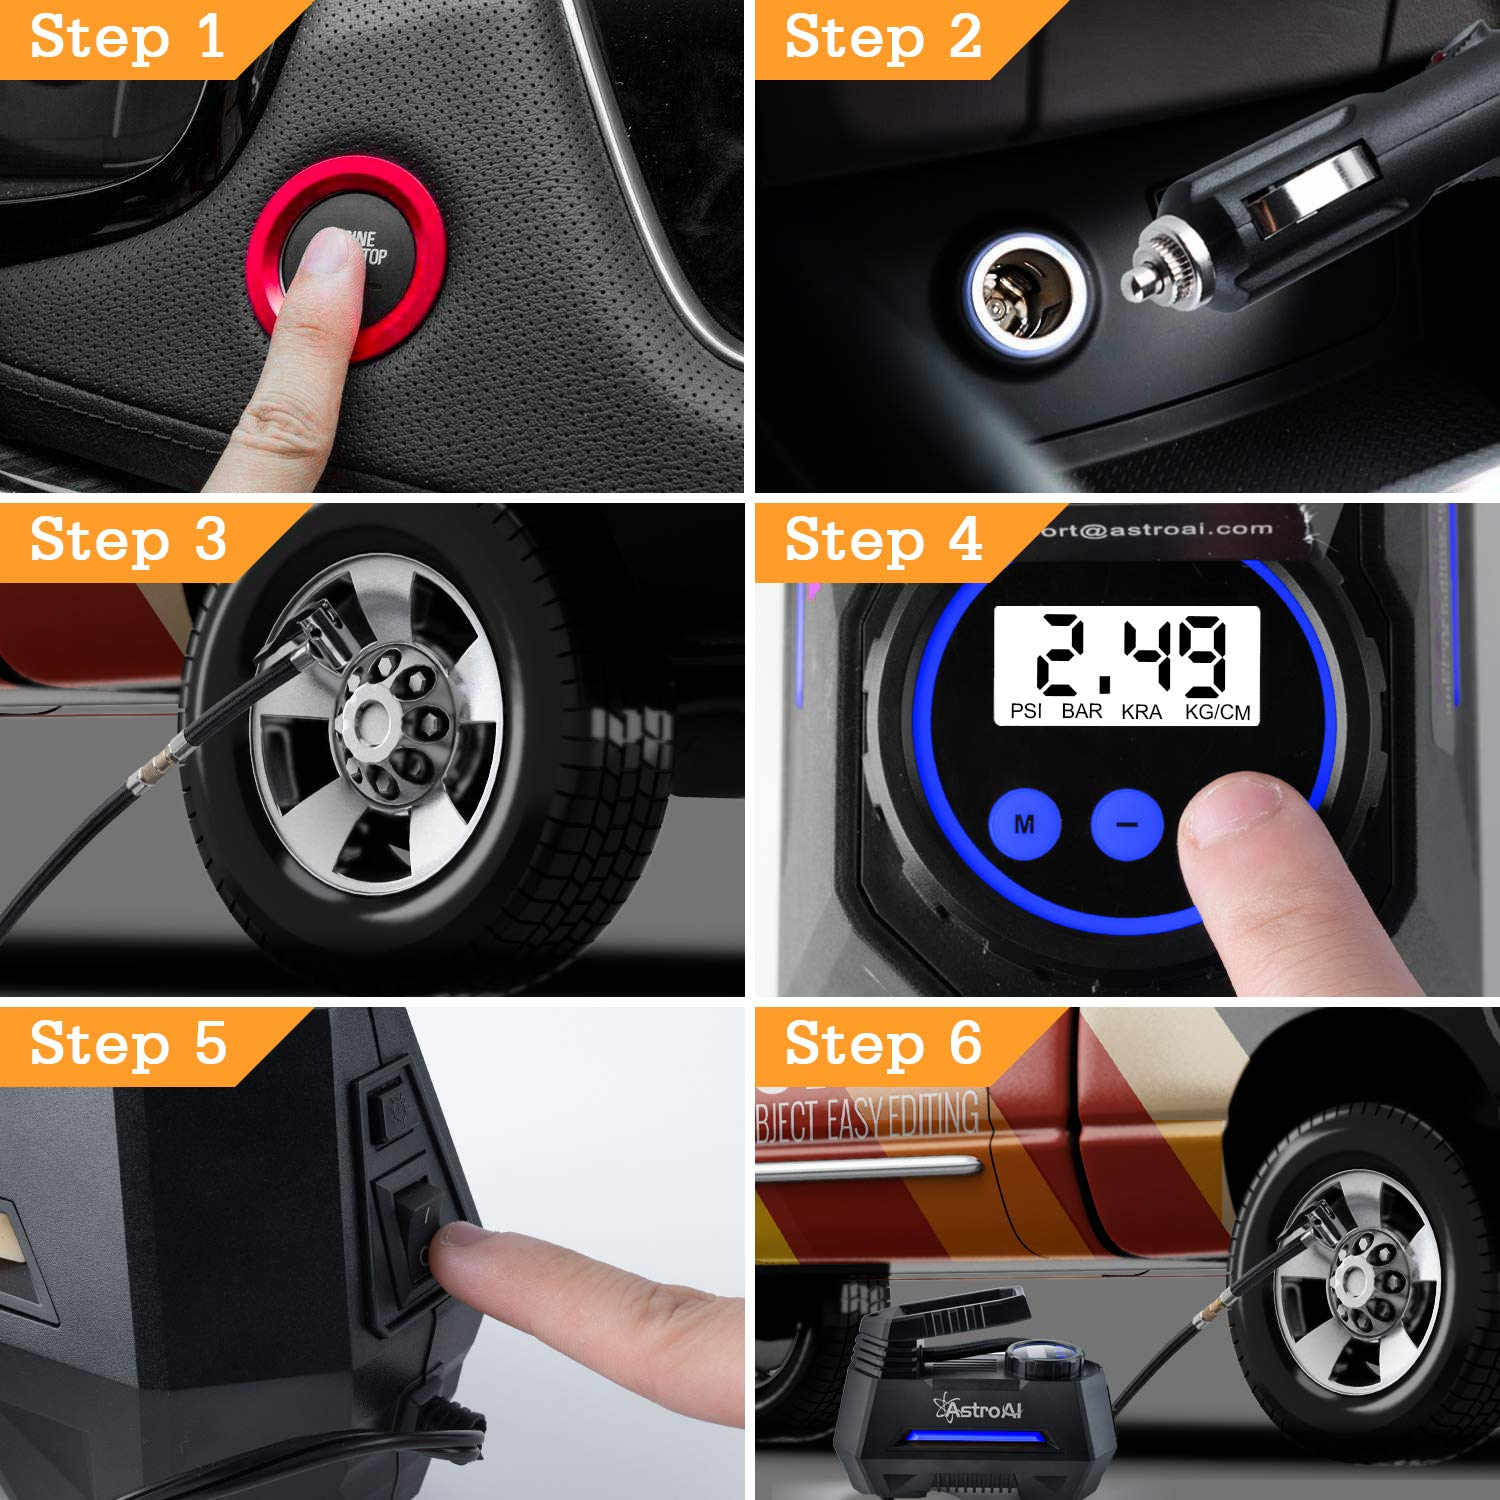 Tire Inflator with Gauge 12V DC Digital Car Air Pump 100PSI with LED Light AstroAI Portable Air Compressor Pump Bicycle Extra Nozzle Adaptors for Car Motorcycle Ball Air Mattress Larger Air Flow